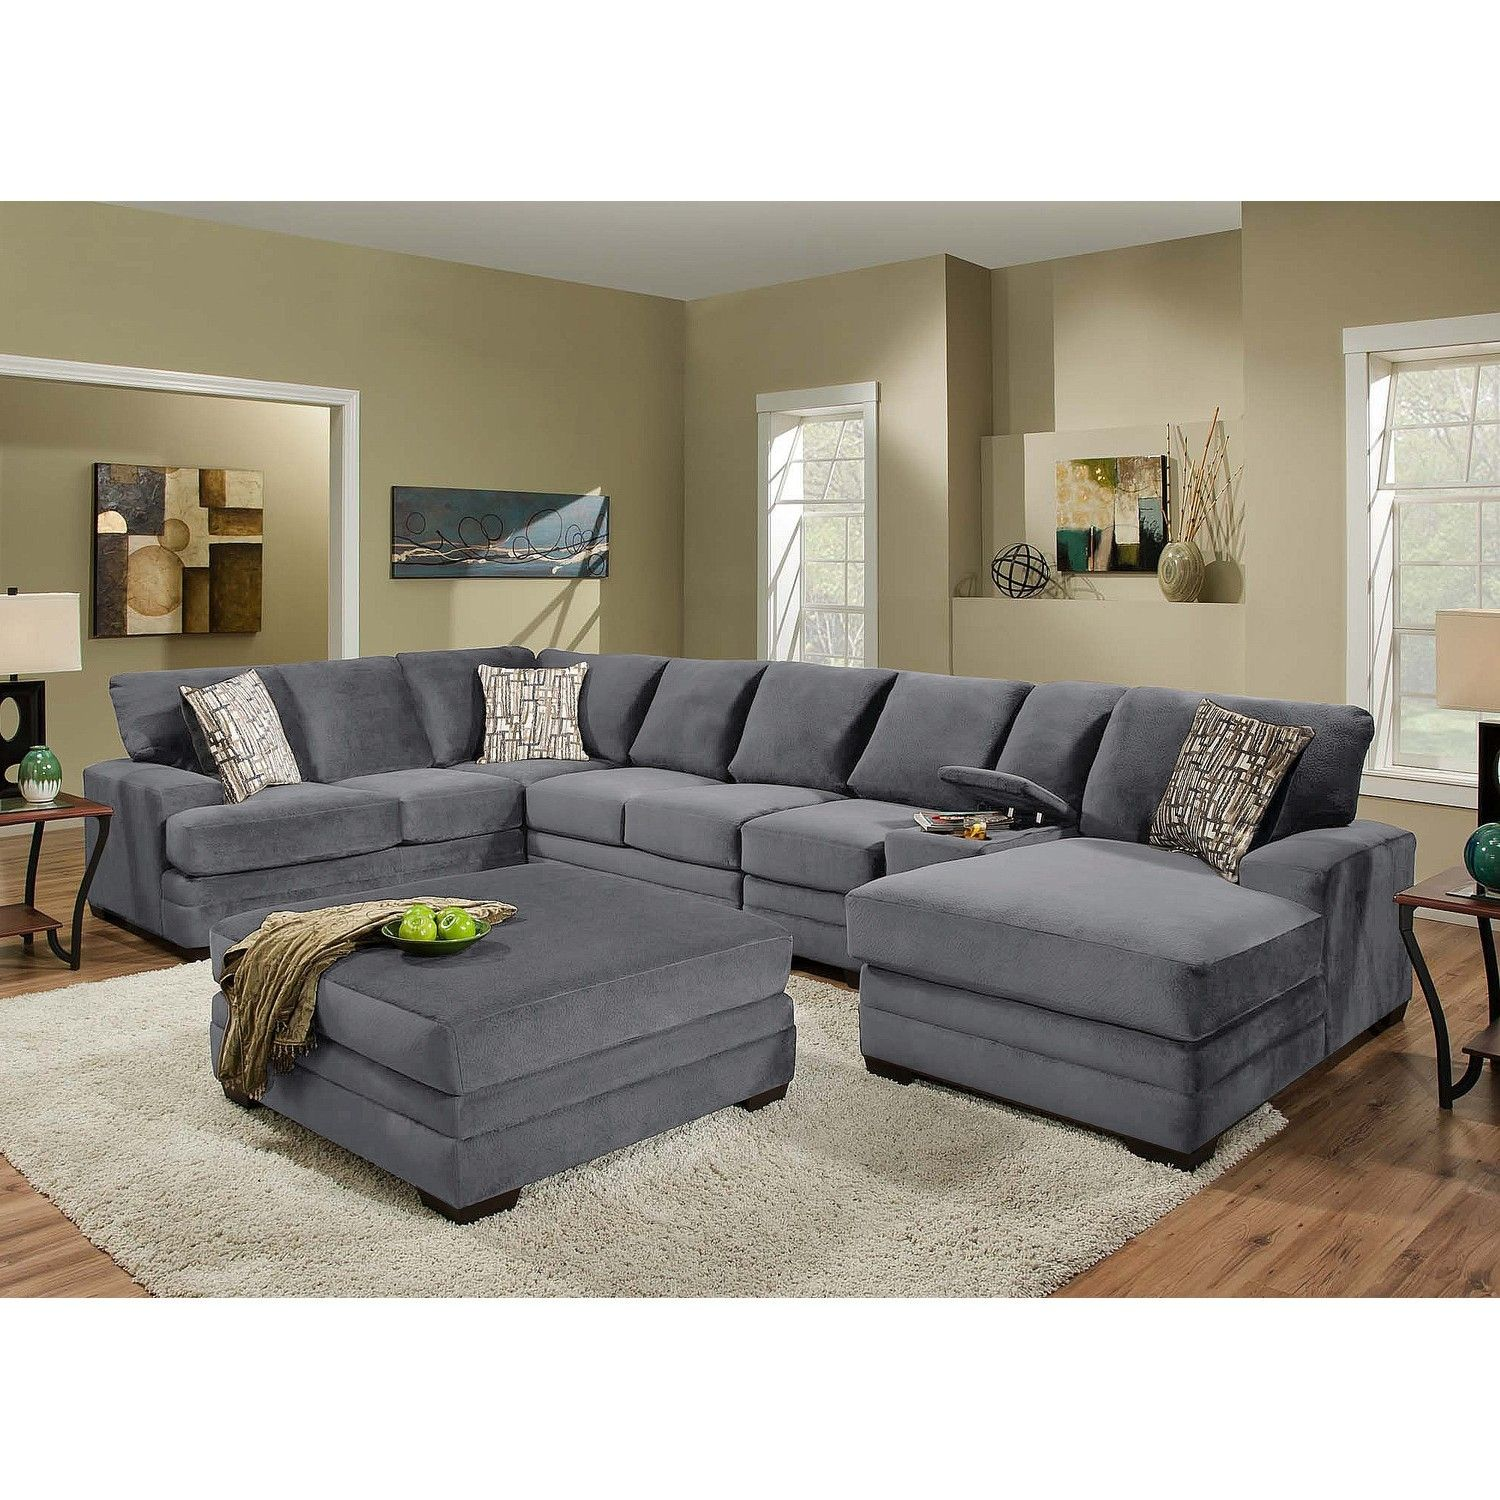 Most Durable Sectional Sofa